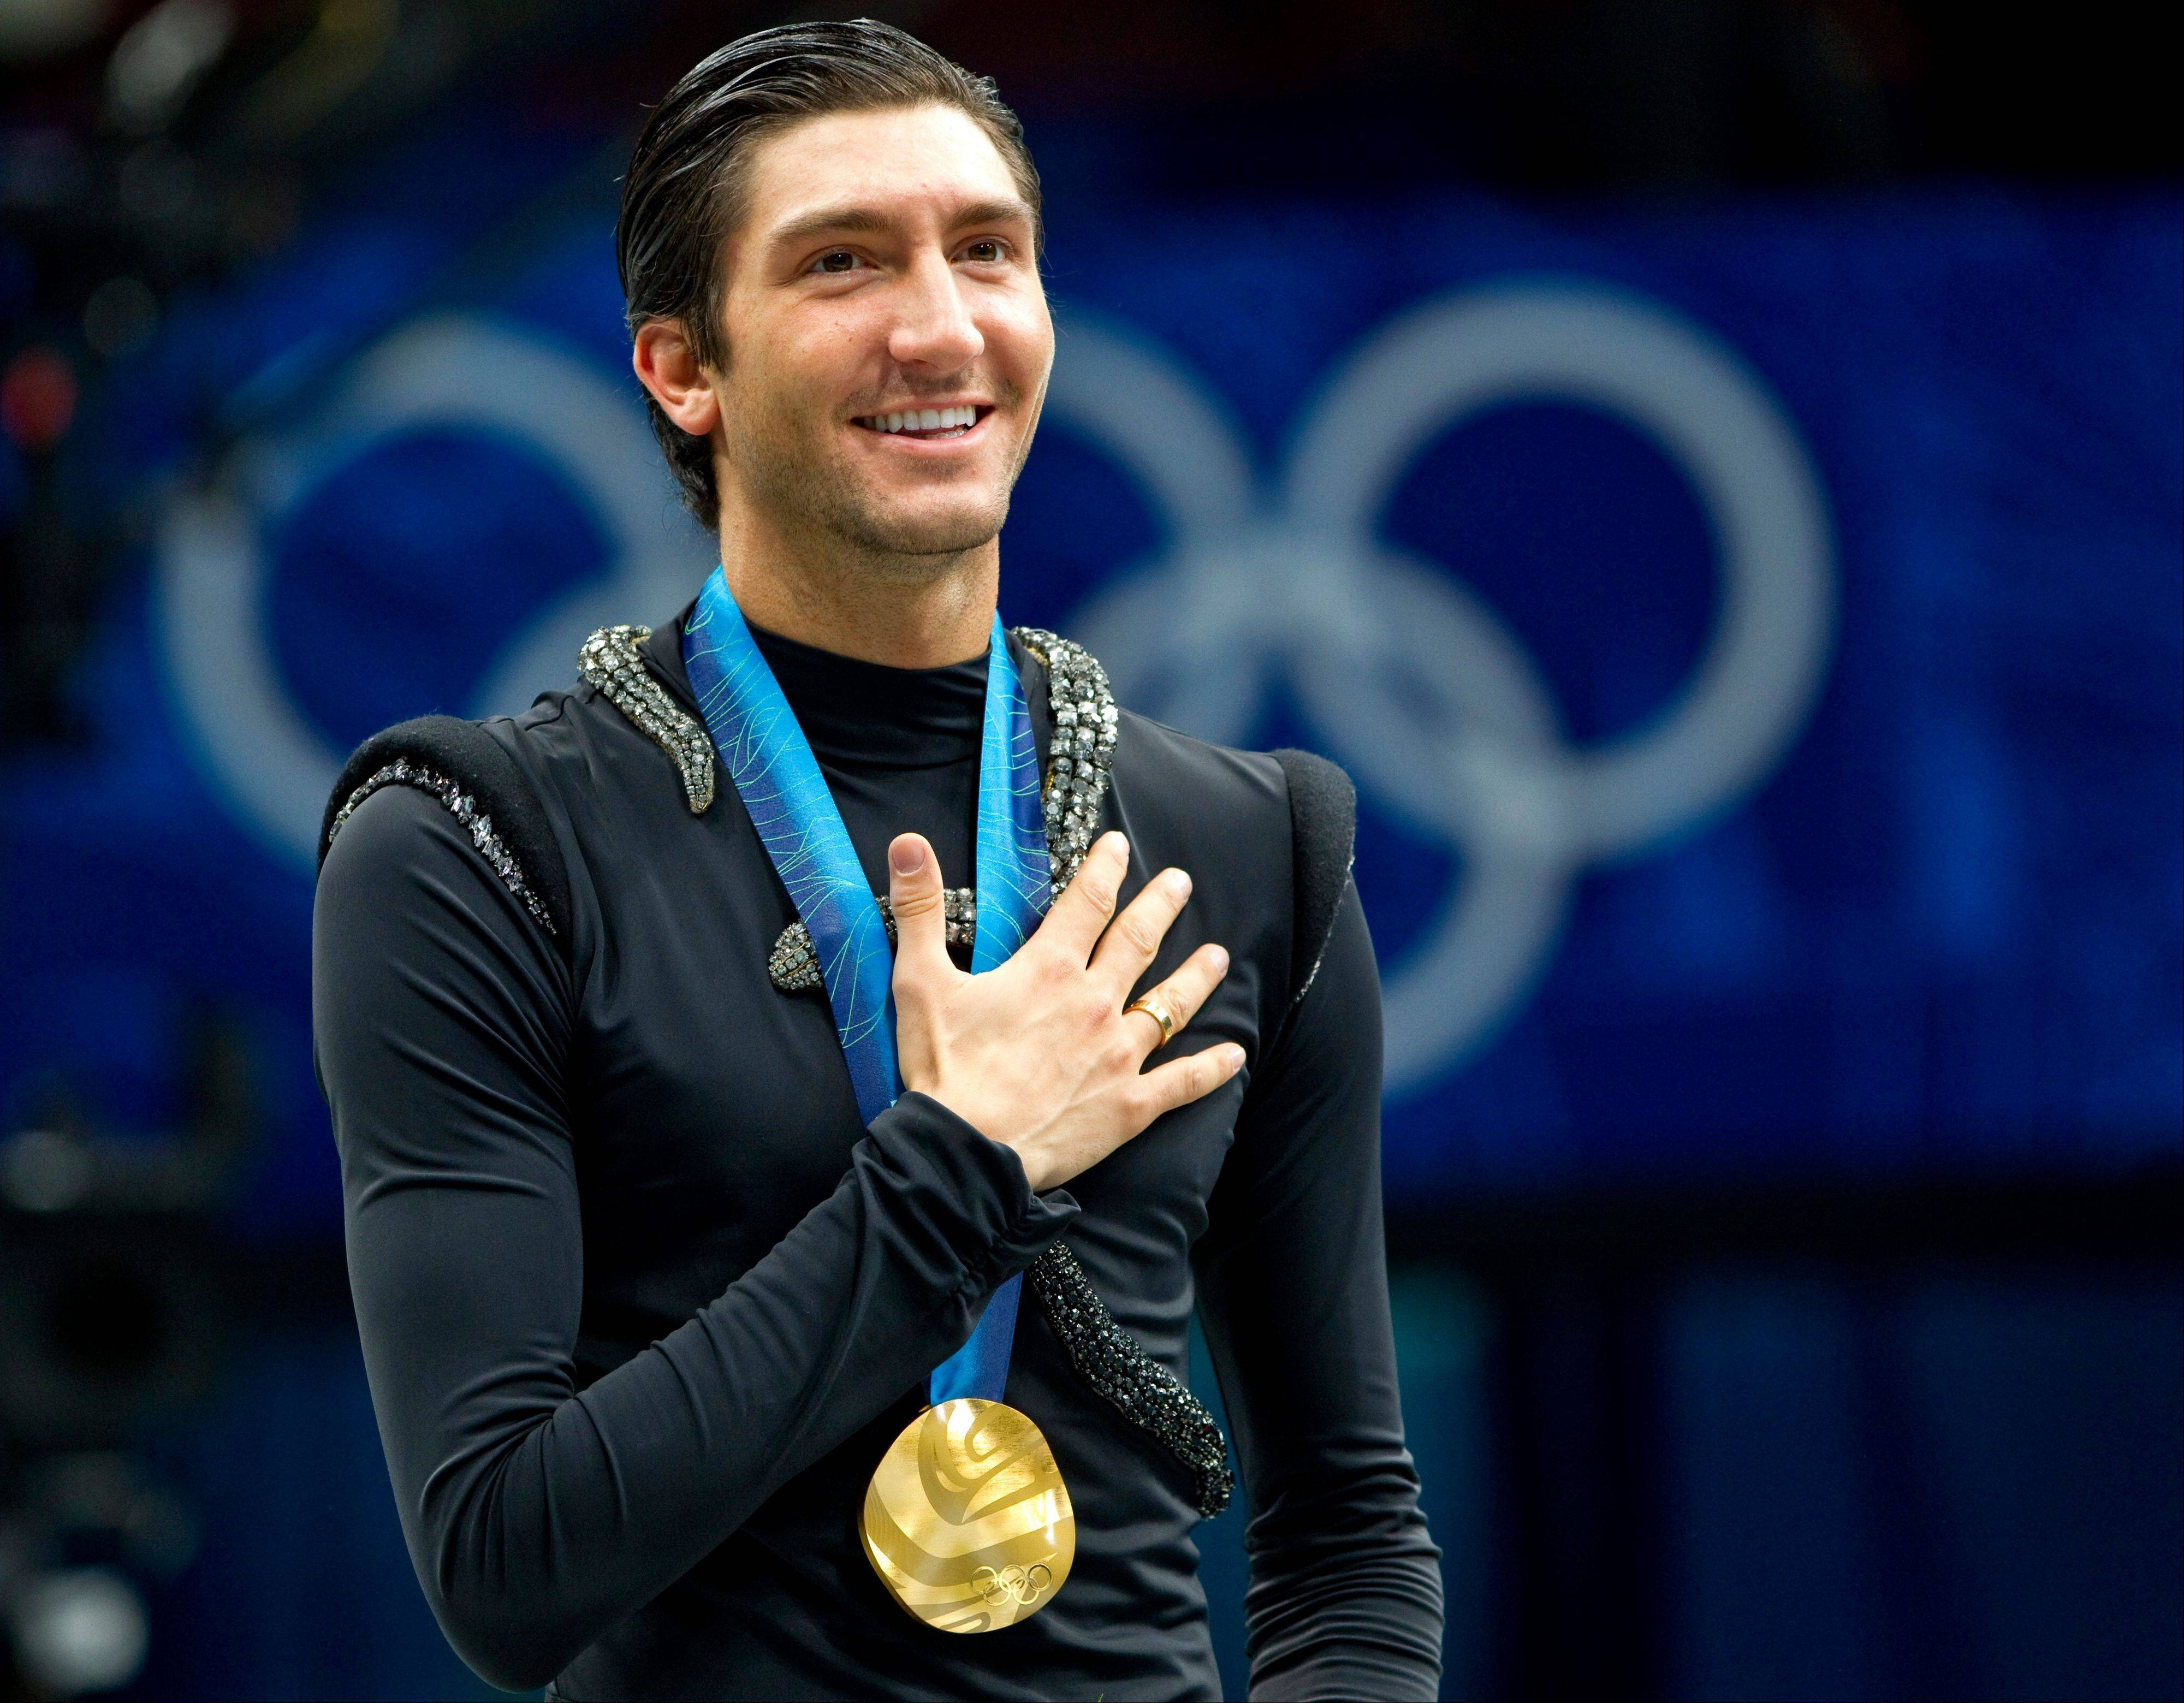 "Olympic gold medalist Evan Lysacek of Naperville will be in Sochi after all, although he won't be defending his gold medal from 2010 after injuries curtailed his comeback last year. He'll be ""wearing many hats"" in Russia, he says."